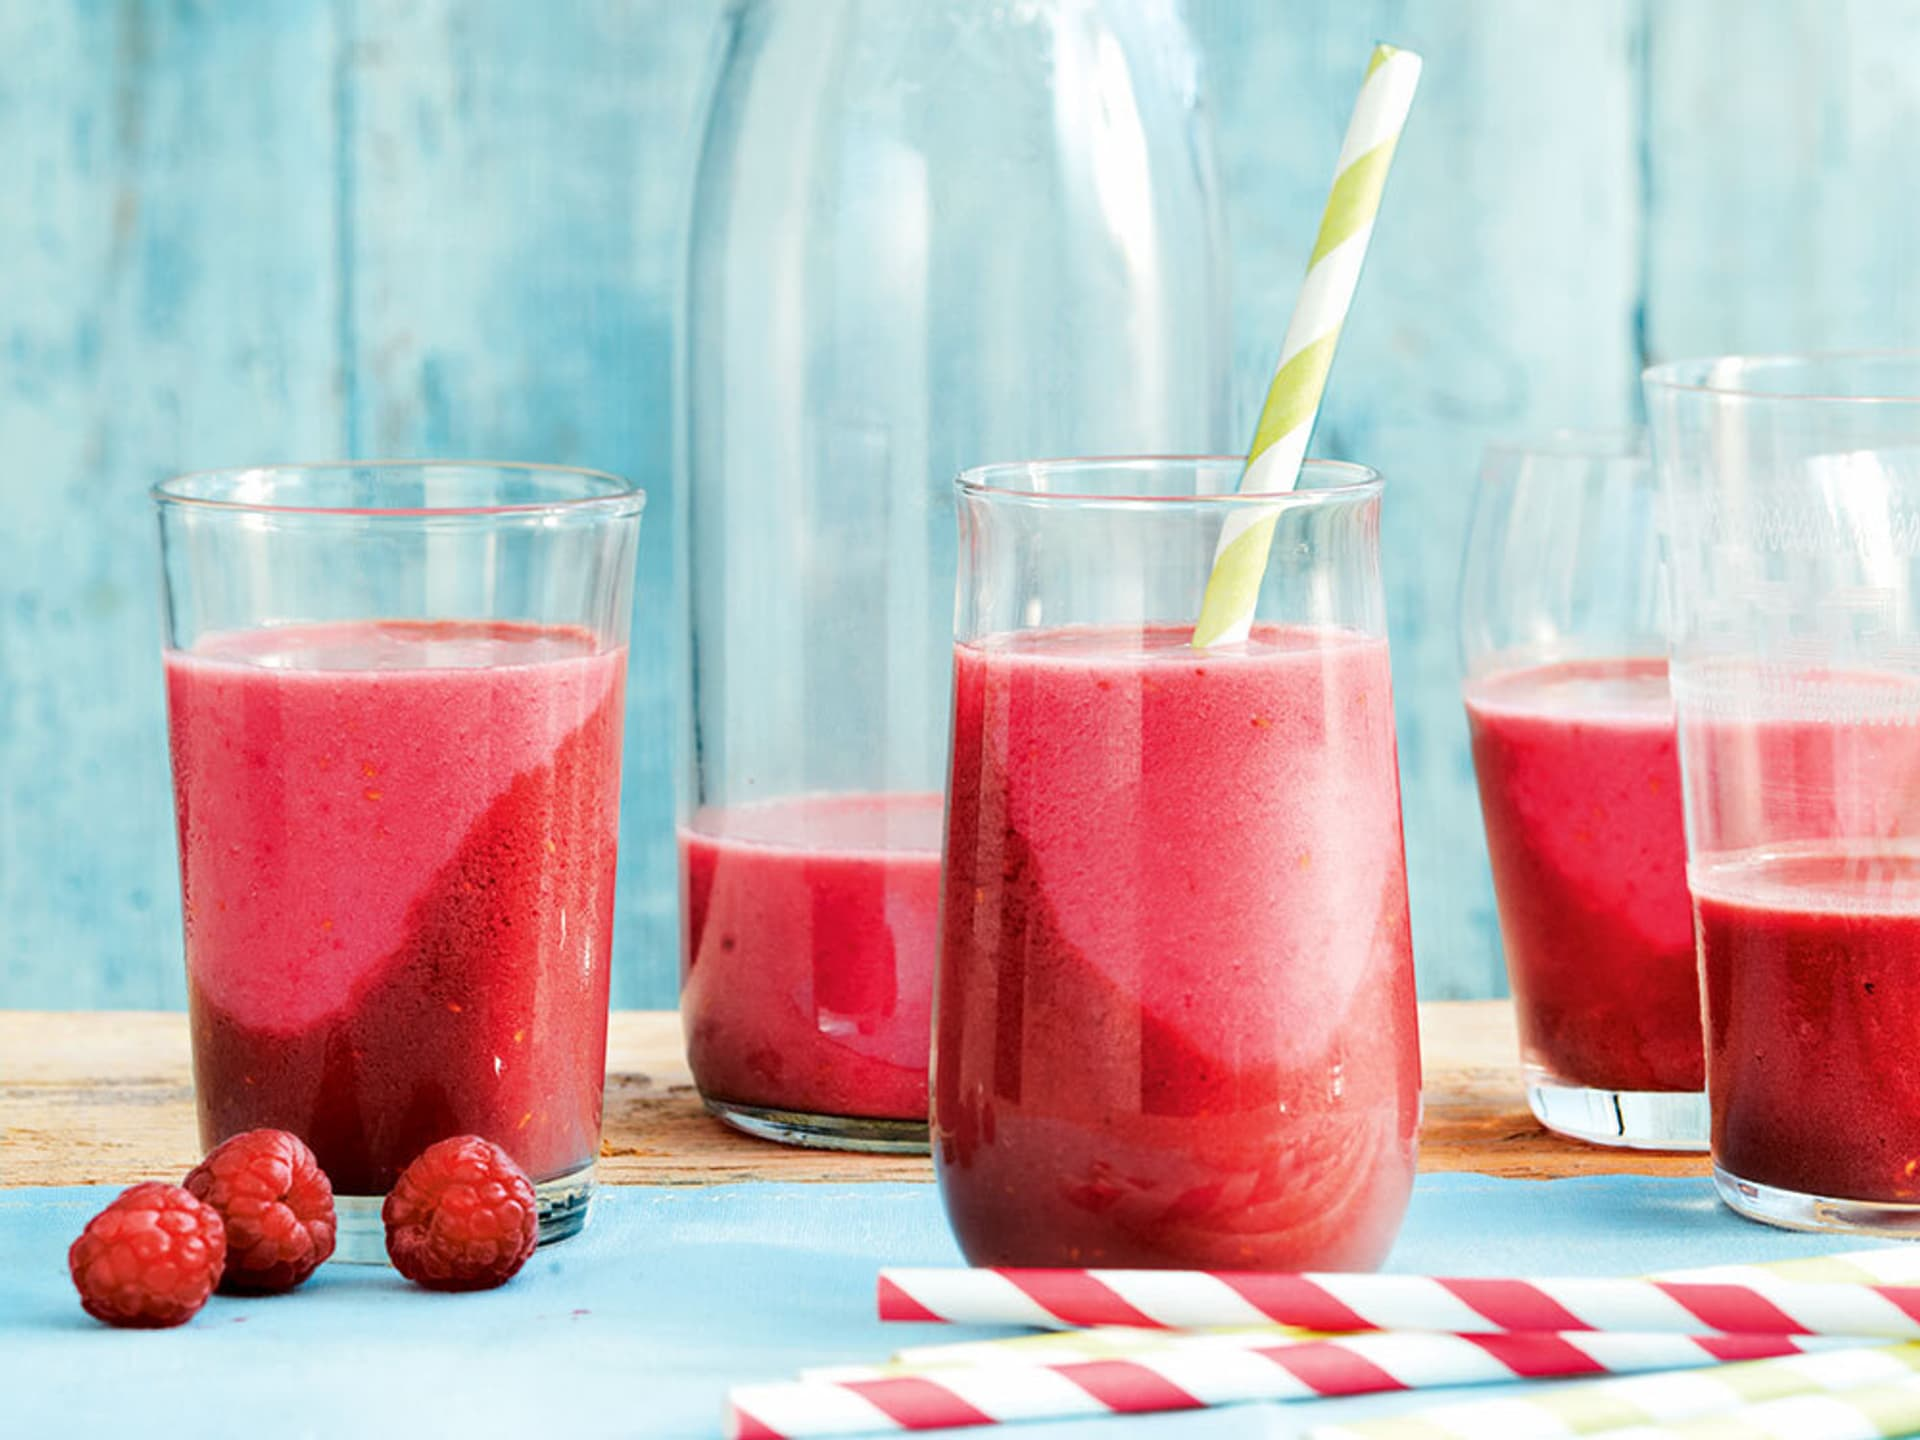 Himbeer hafer smoothie